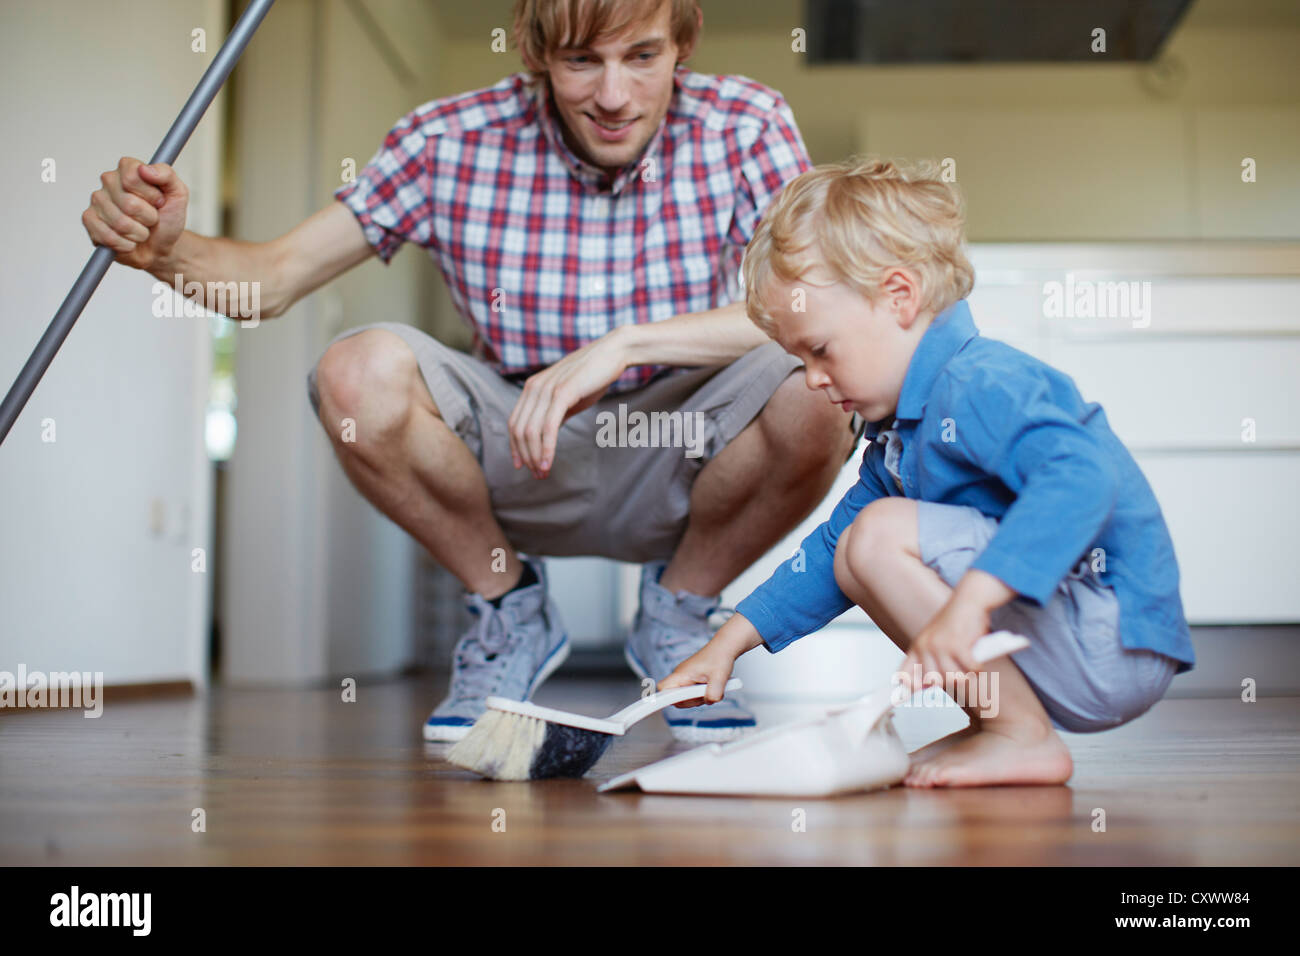 Boy helping father sweep floor - Stock Image